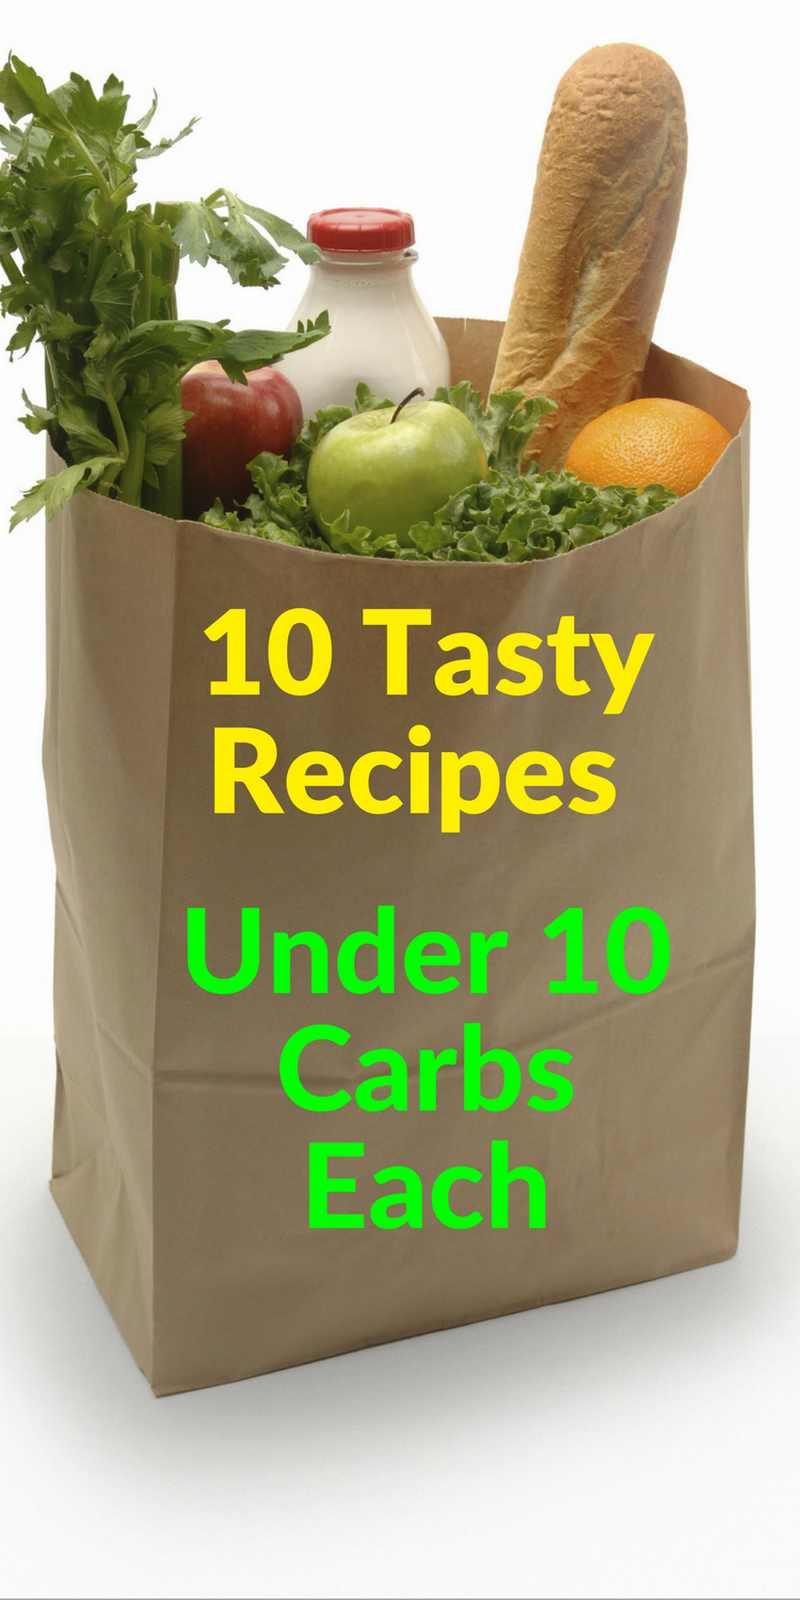 10 Tasty Recipes Under 10 Carbs Each |  Low-Carb Diet | Ketogenic Diet | Recipes | Weight Loss Food | Weight Loss Recipes | Healthy Meals | Weight Loss Dinner Recipes | Weight Loss Dessert Recipes | Weight Loss Low Carb Recipes | ARoadtoTravel.com